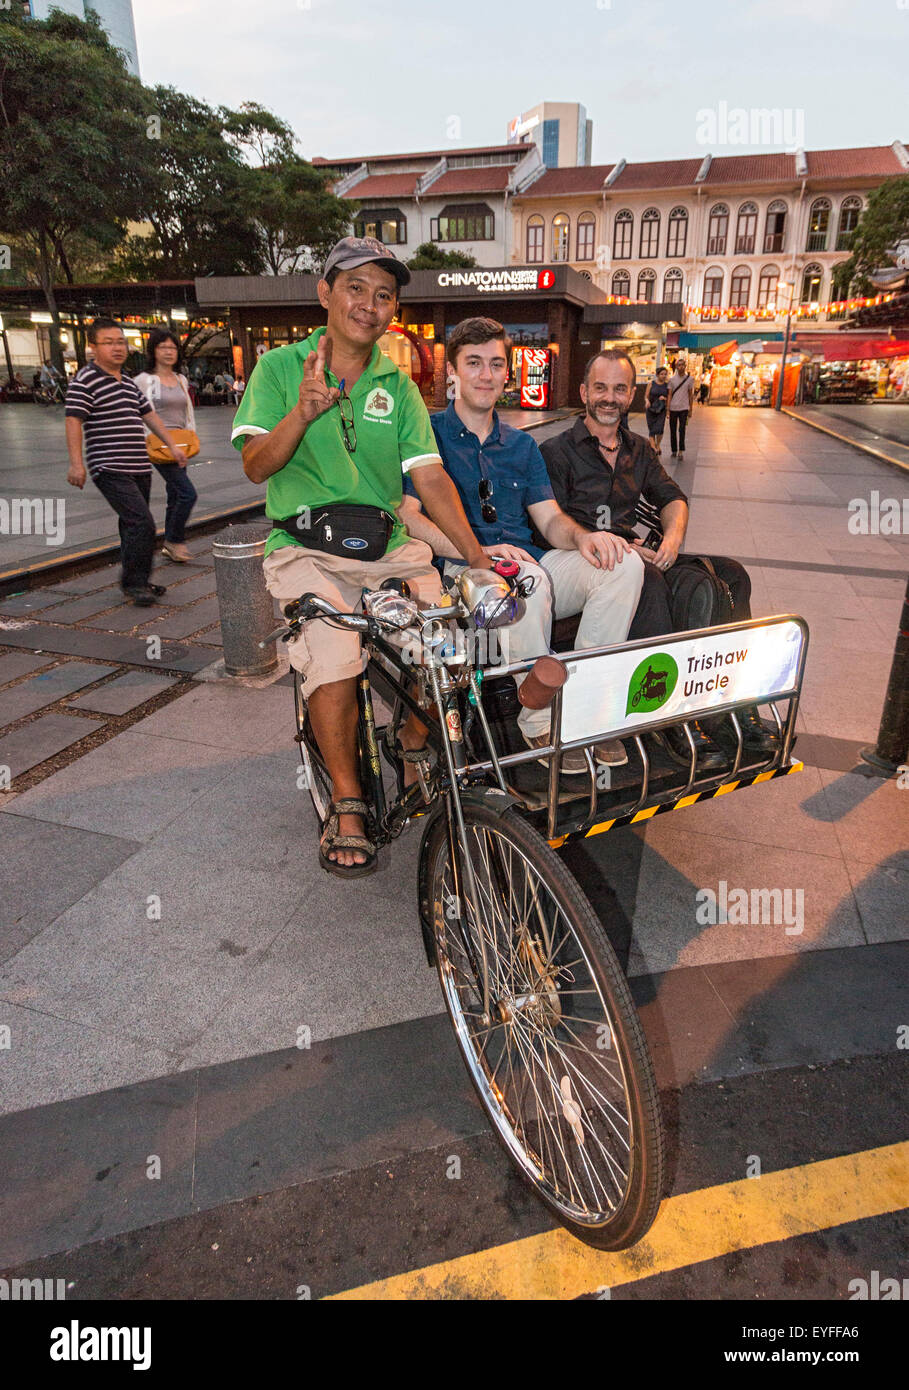 Trishaw ride in downtown Singapore. - Stock Image